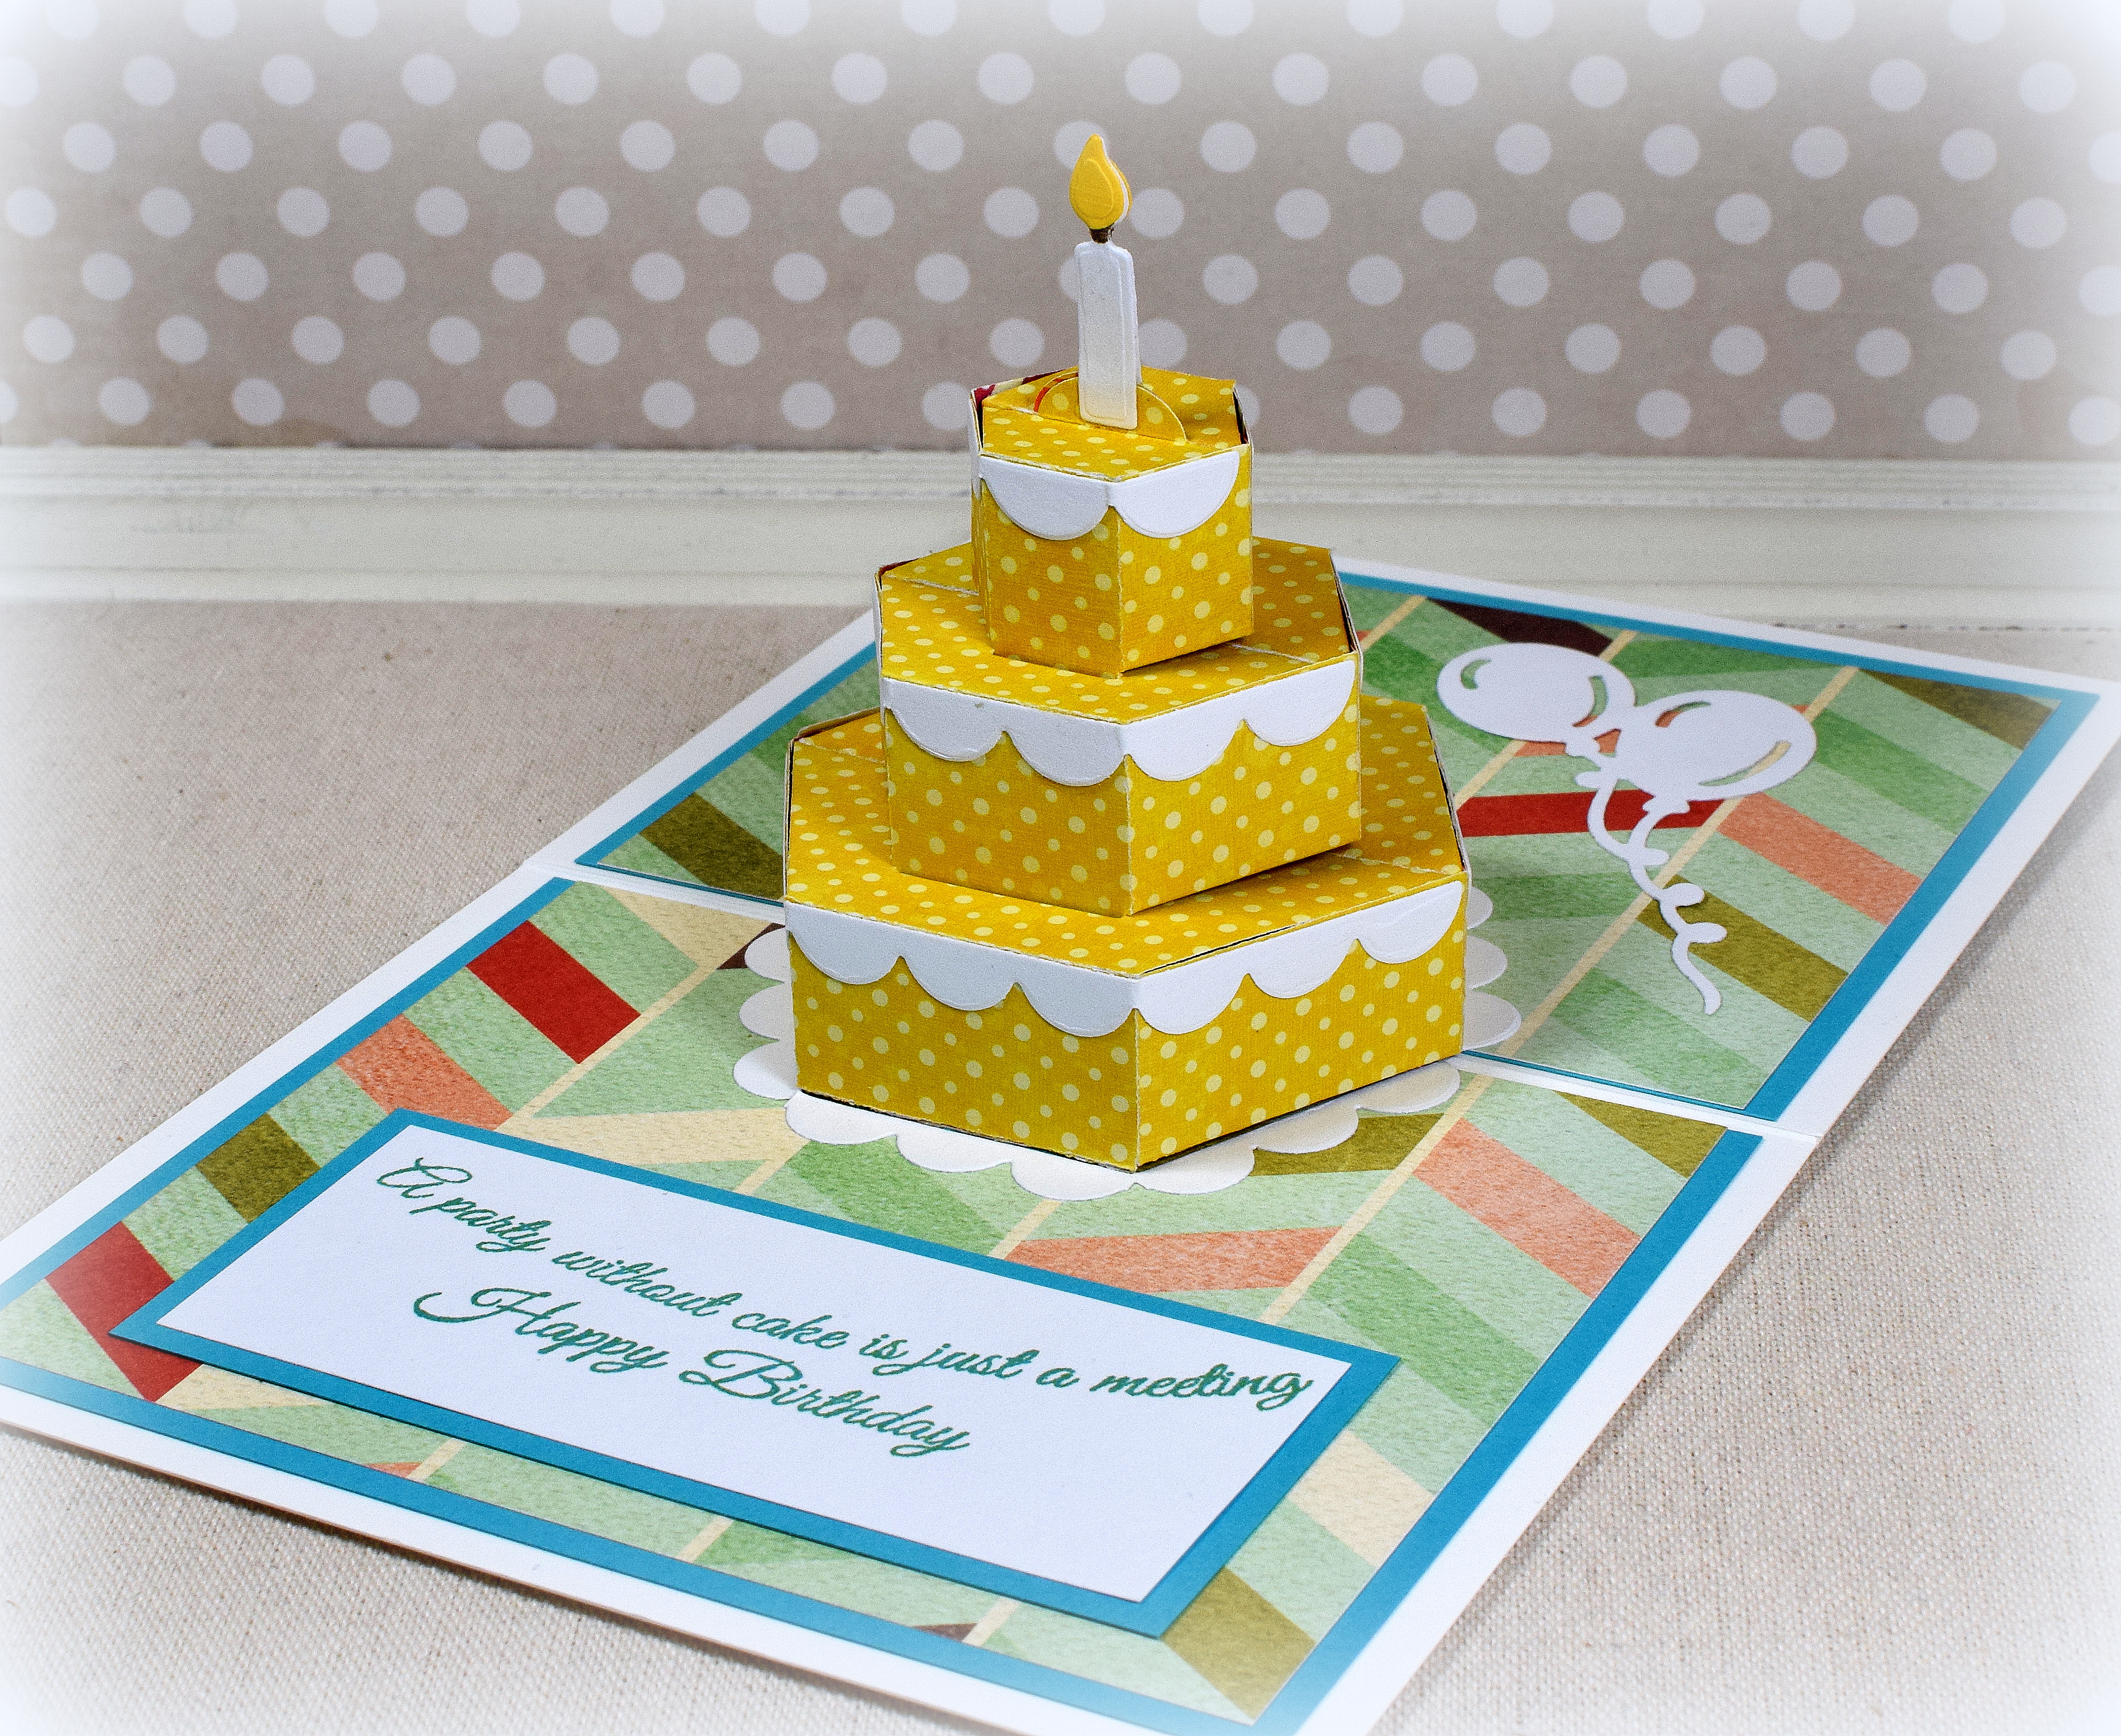 Magnificent Birthday Cake Pop Up Card I Played With Paper Today Birthday Cards Printable Benkemecafe Filternl